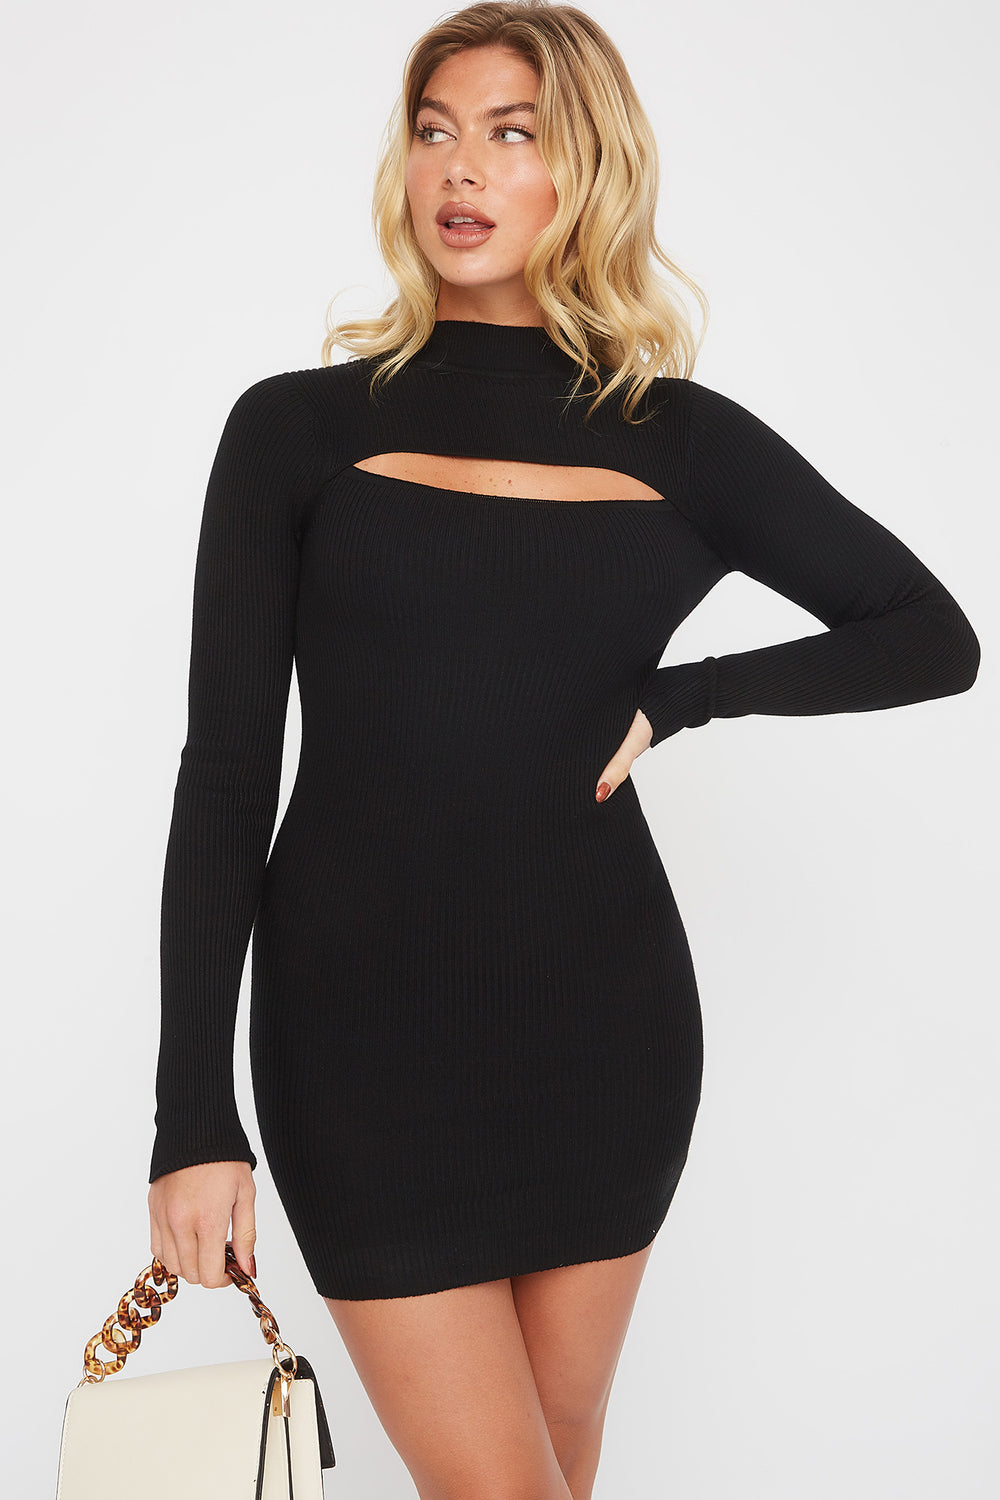 Ribbed Mock Neck Cut Out Sweater Dress Black